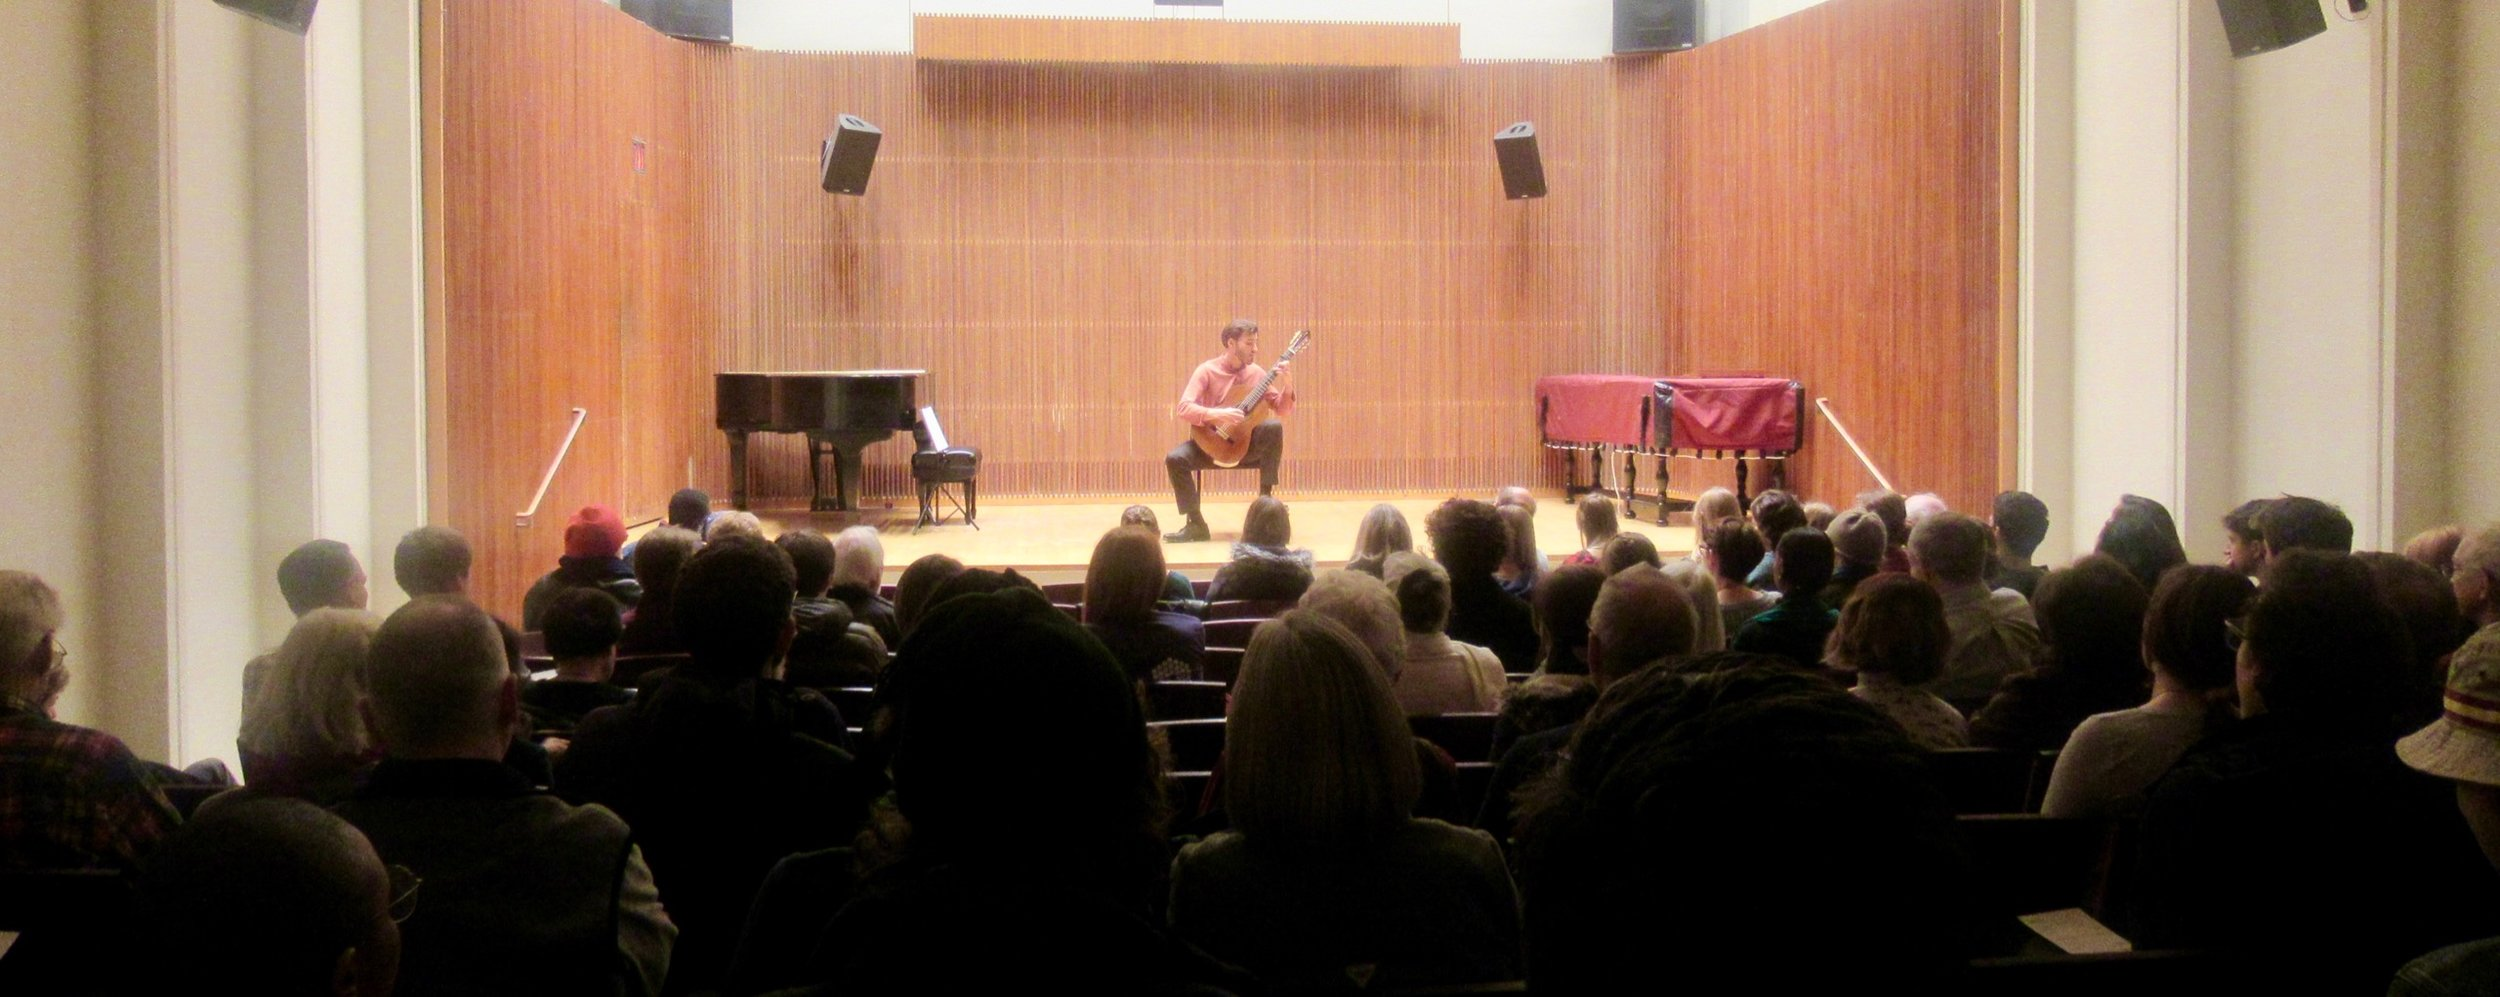 Mohit plays for a full house in Oberlin Conservatory's Kulas Recital Hall.